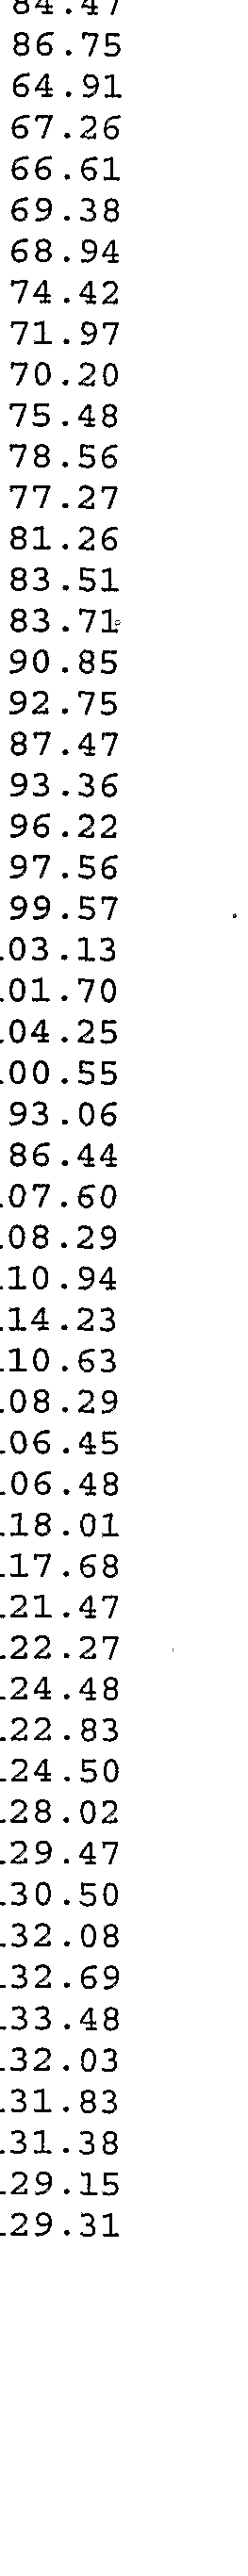 WO2002102974A2 - Mutant proteins, high potency inhibitory antibodies